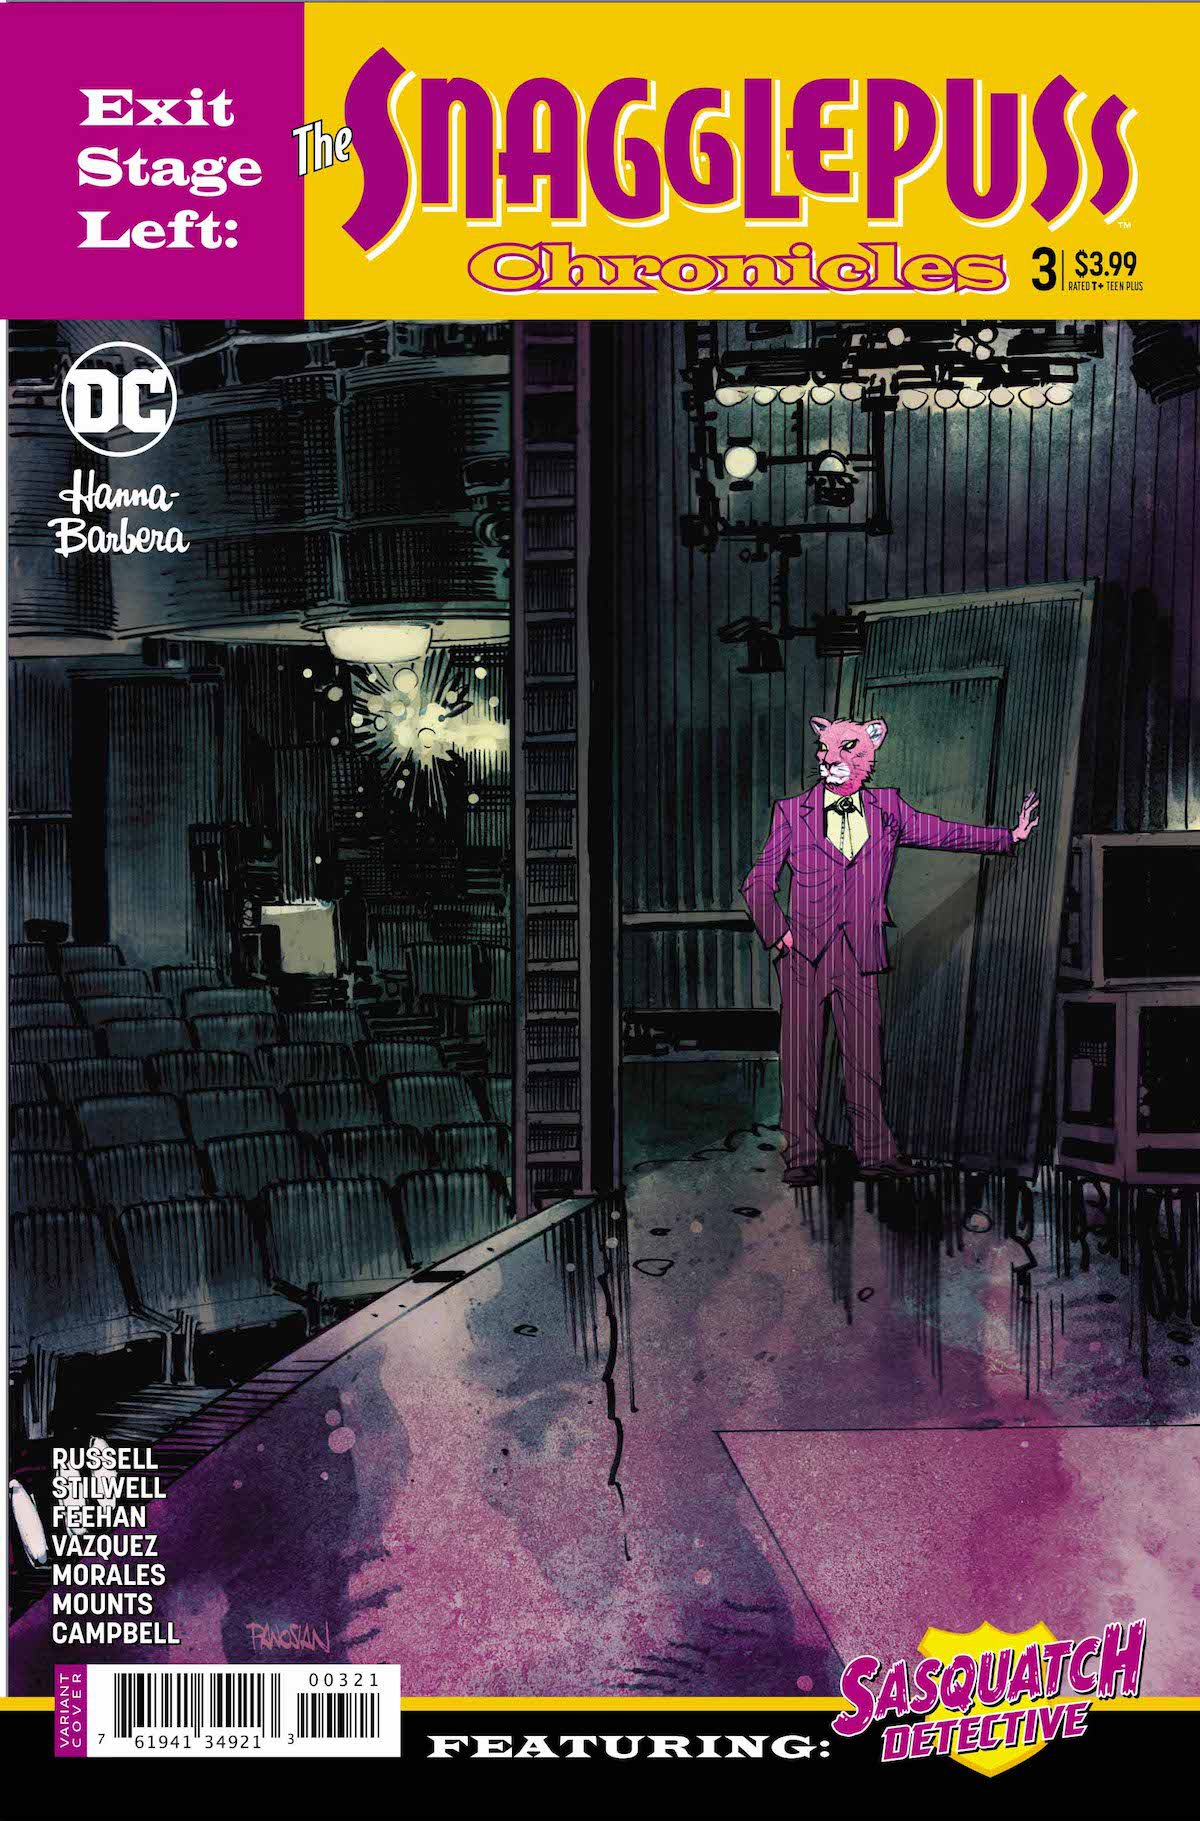 Snagglepuss Chronicles #3 variant cover